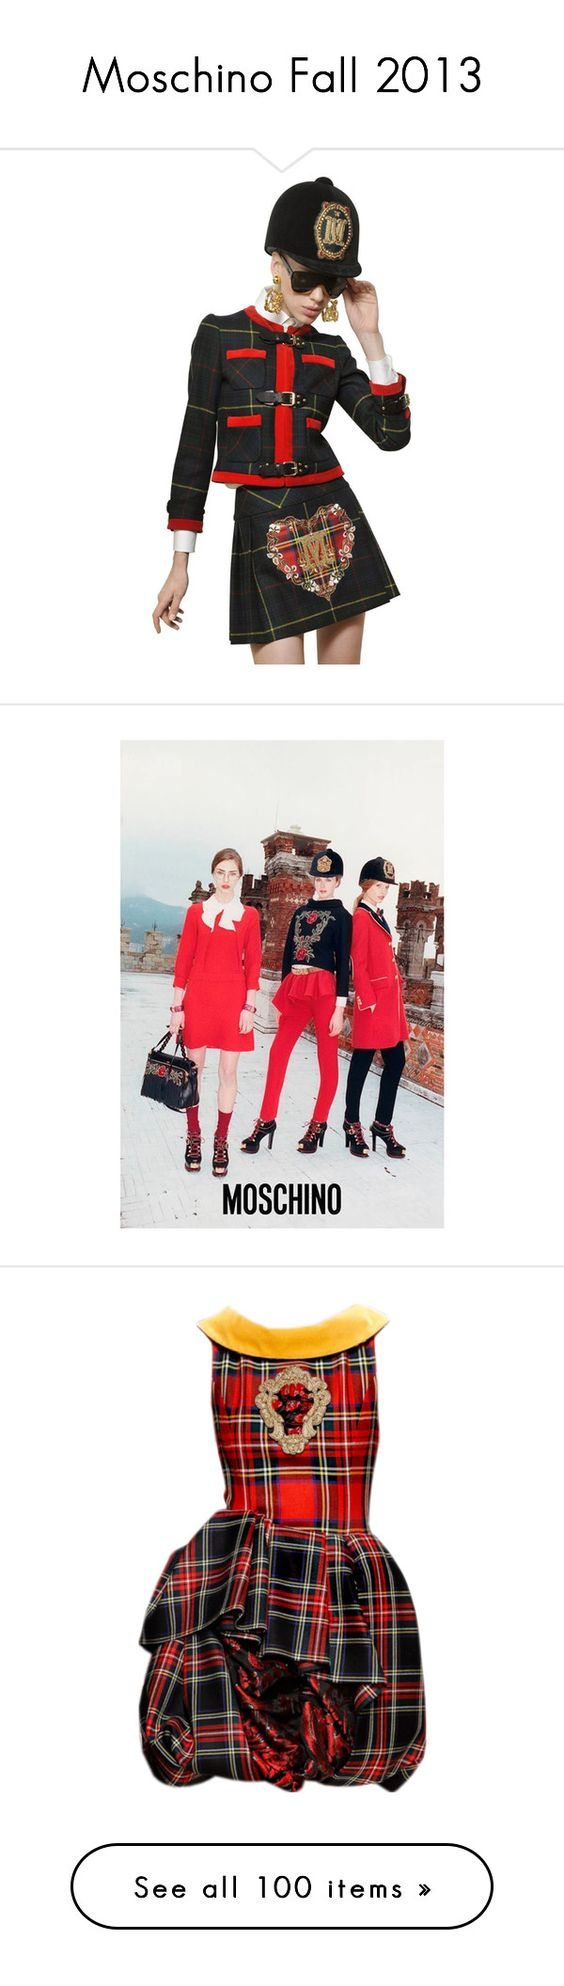 """Moschino Fall 2013"" by sella103 ❤ liked on Polyvore featuring outerwear, jackets, moschino, multi, heavy jacket, moschino jacket, plaid jacket, tartan jacket, logos and scritte"